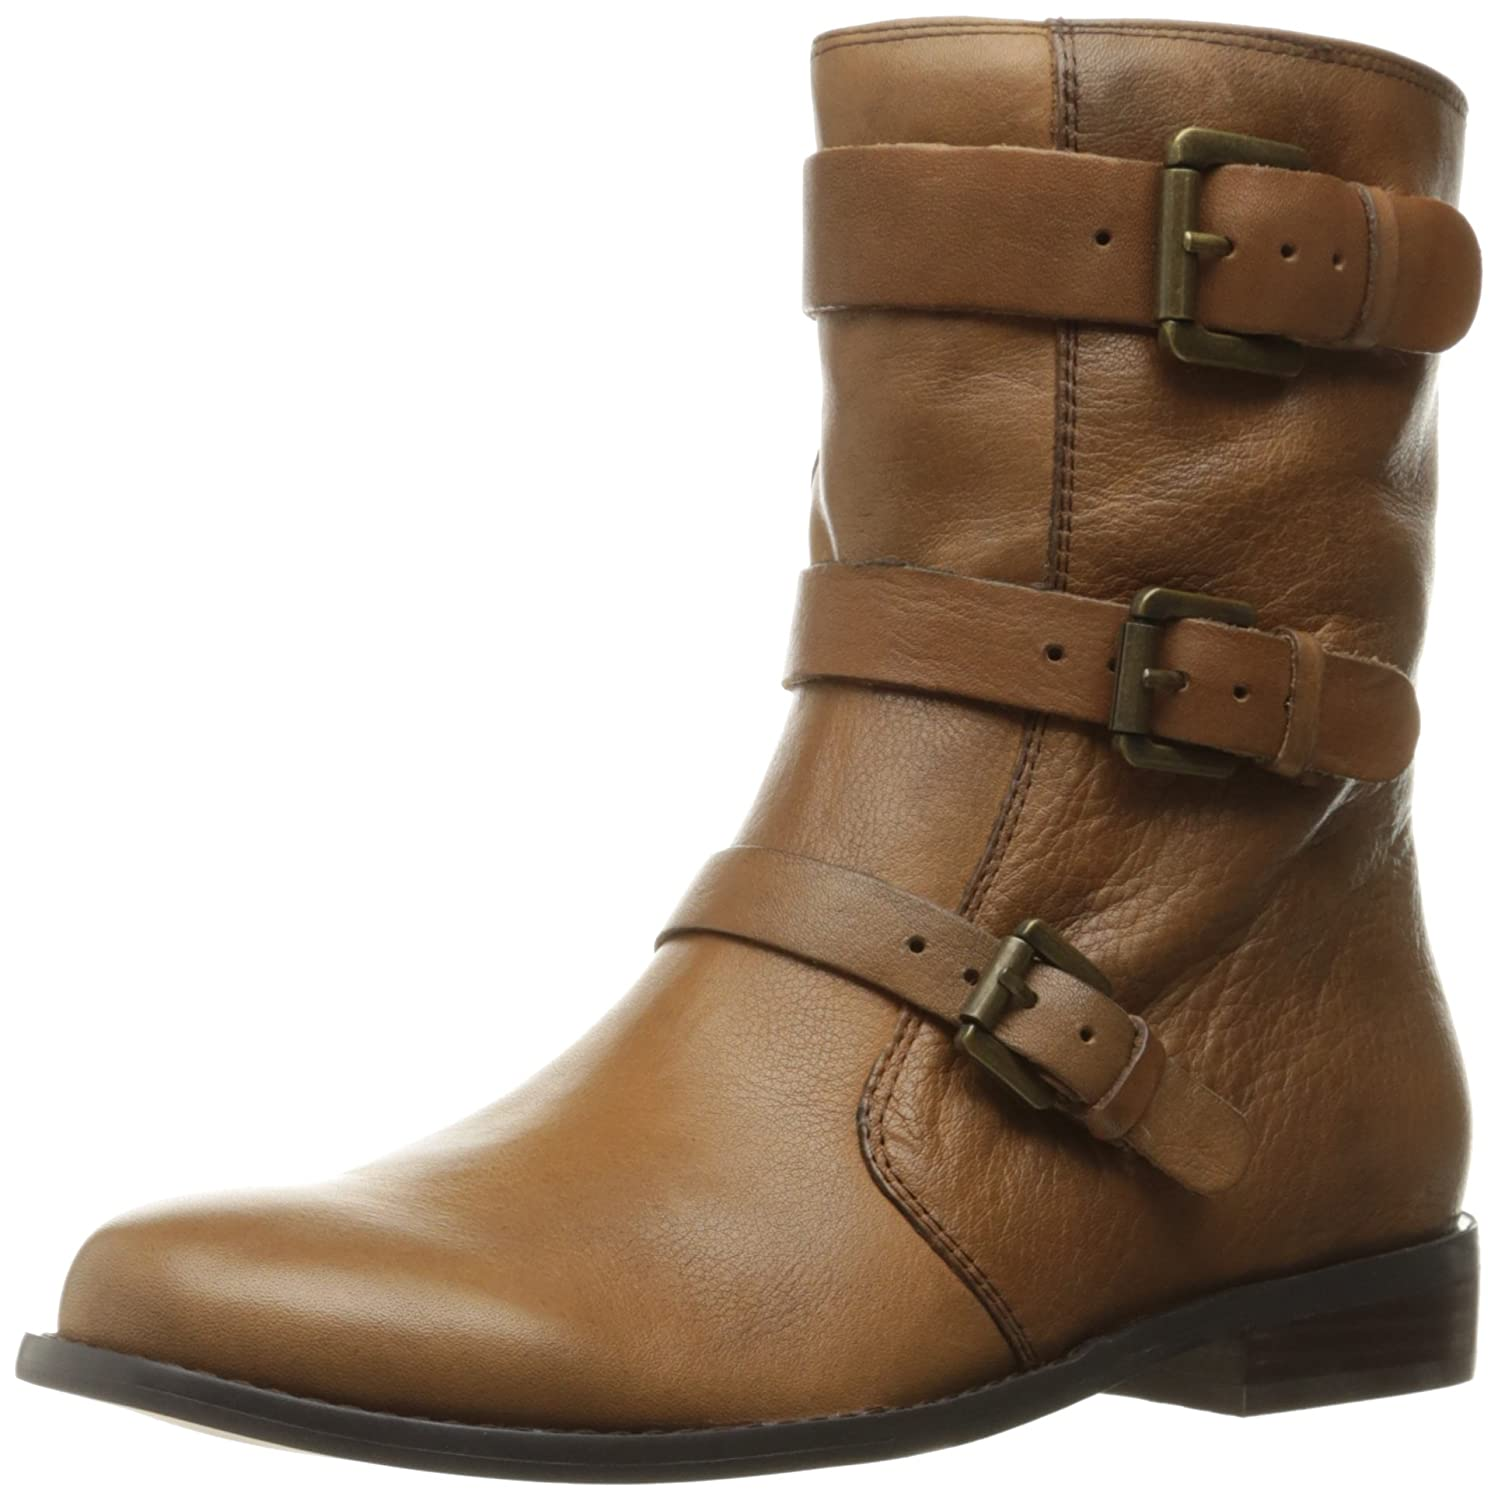 Corso Como Women's Kandace Motorcycle Boot B01IPZRR4I 8.5 B(M) US|Tobacco Tumbled Leather